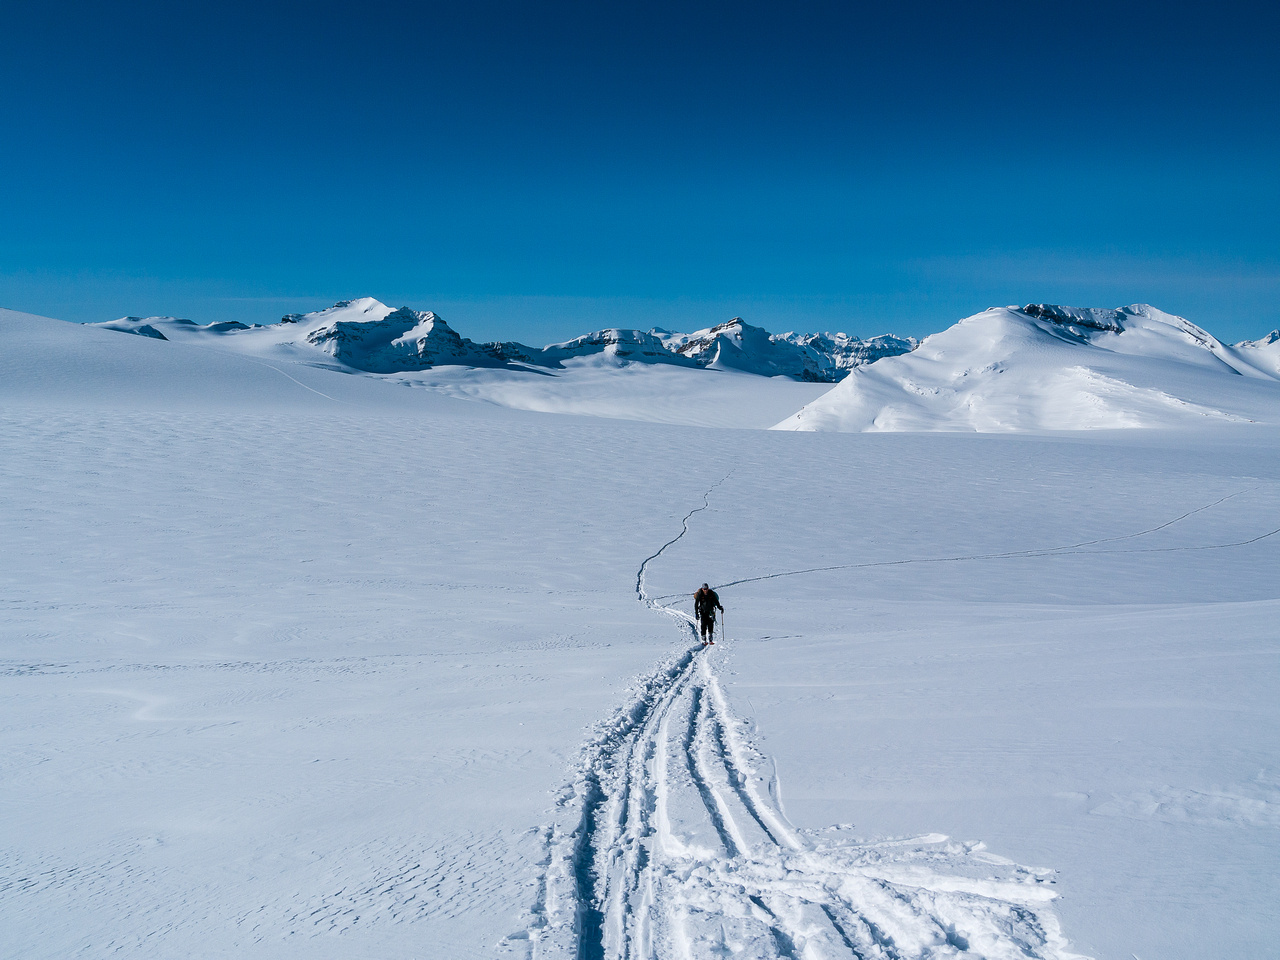 Ascending to the col.